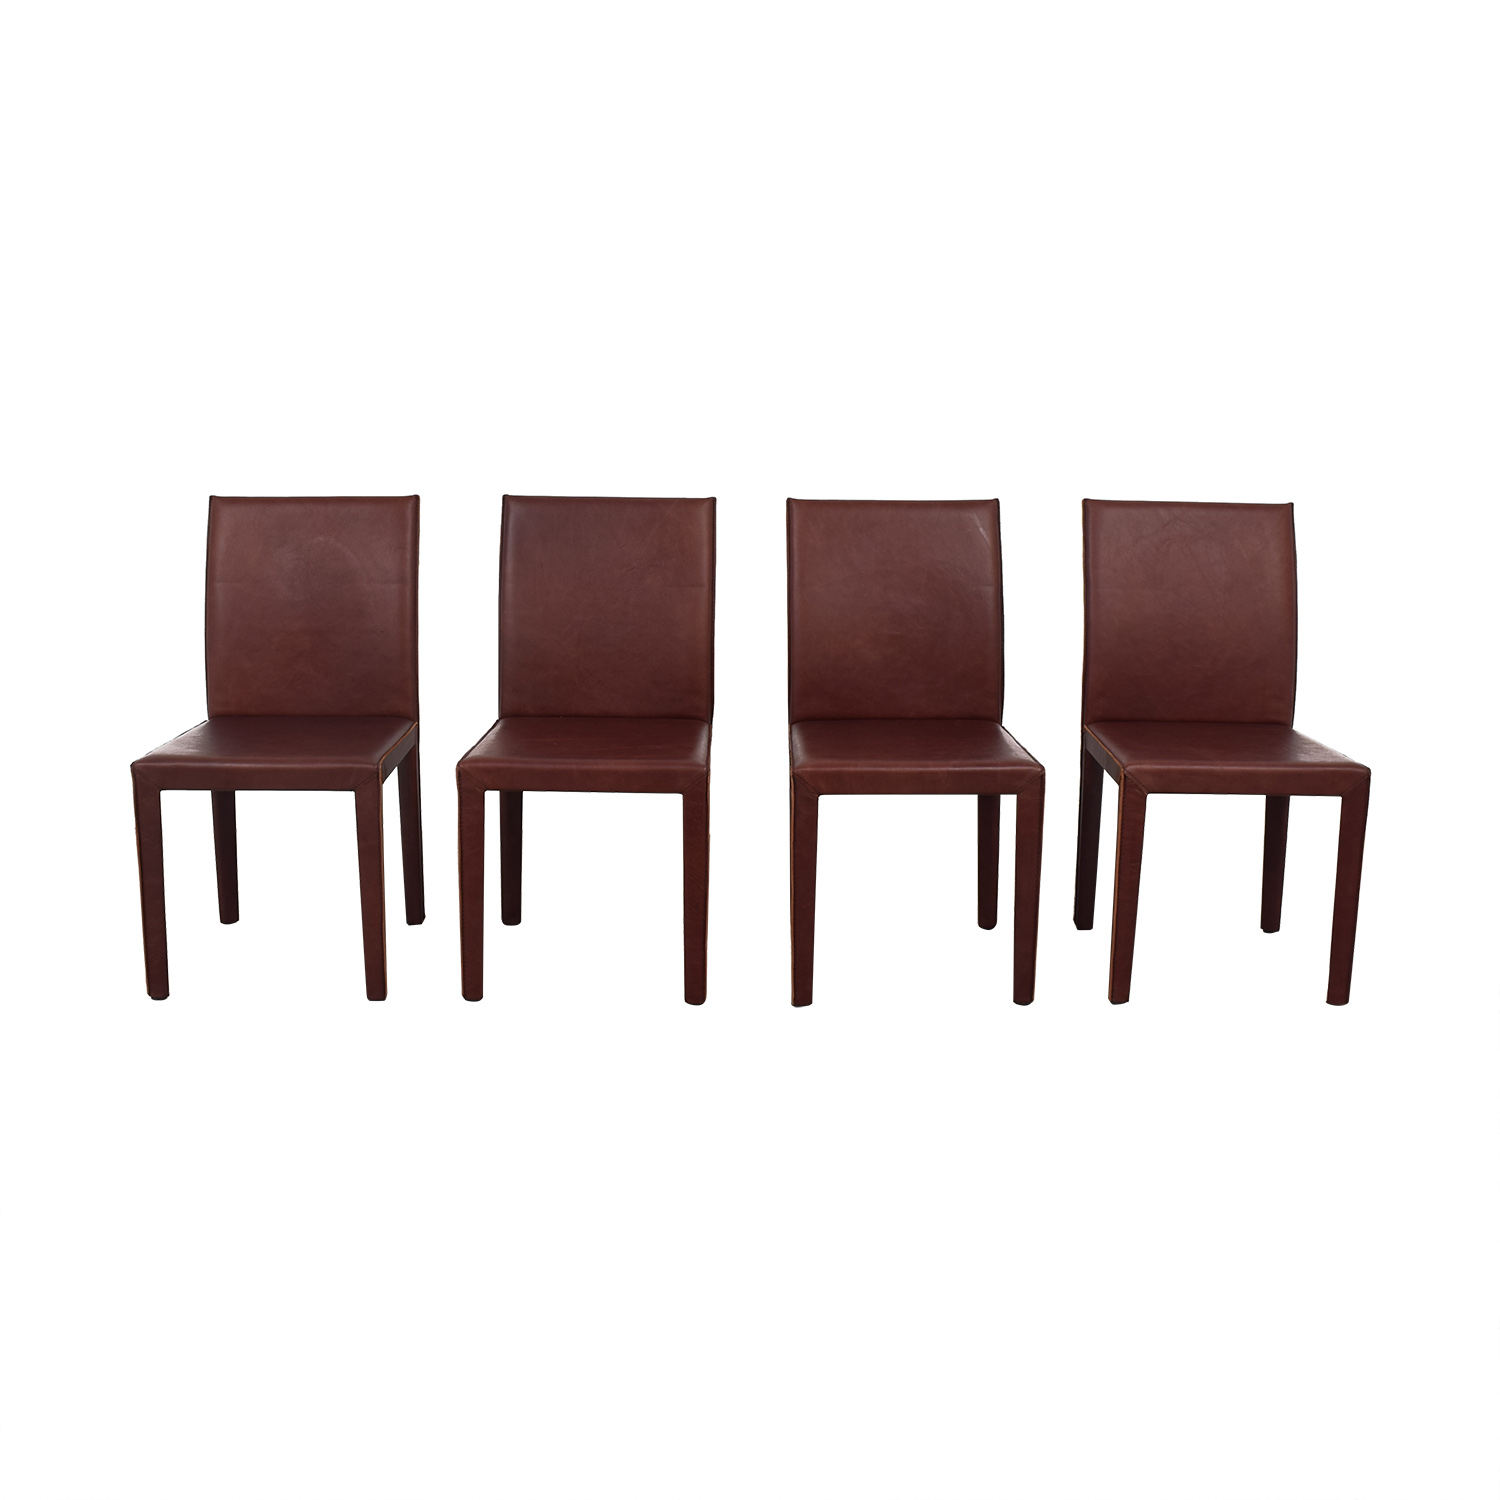 Crate & Barrel Crate & Barrel Folio Merlot Dining Chairs dimensions